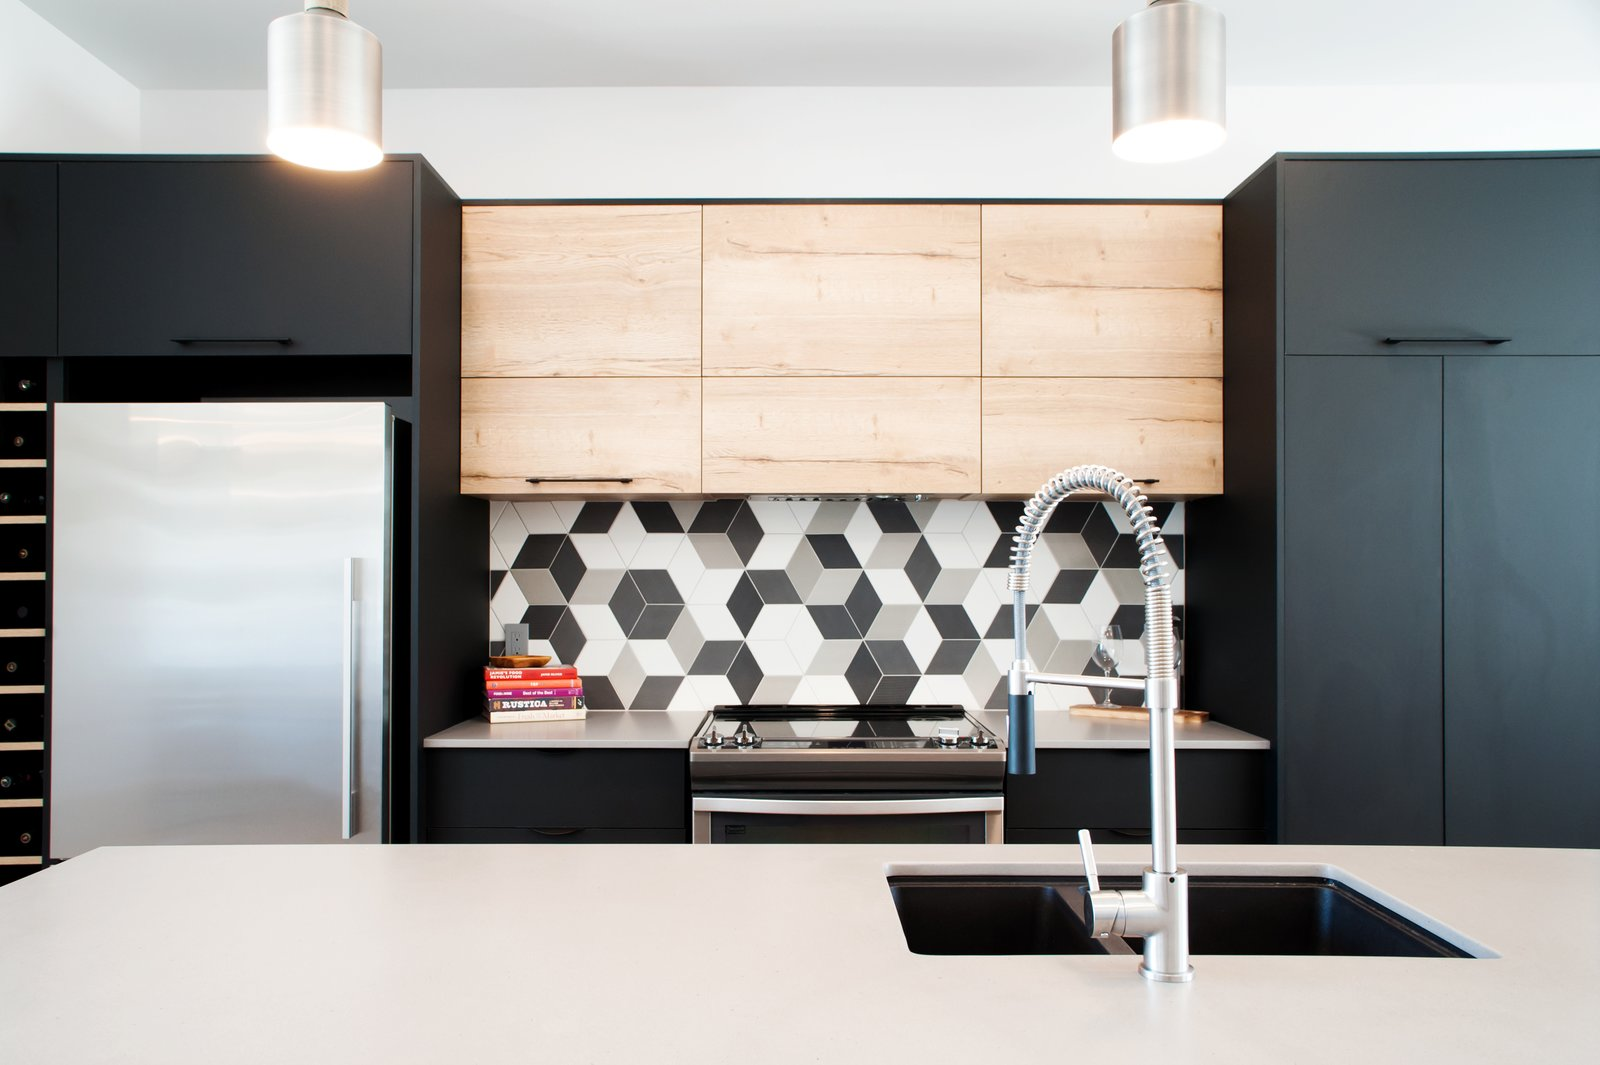 Kitchen with RIOBEL faucet and RAMACIERI SOLIGO tiles and CEASAR STONE quartz countertops and fridge by FISHER AND PAYKEL  Concept DUB House by Concept Dub